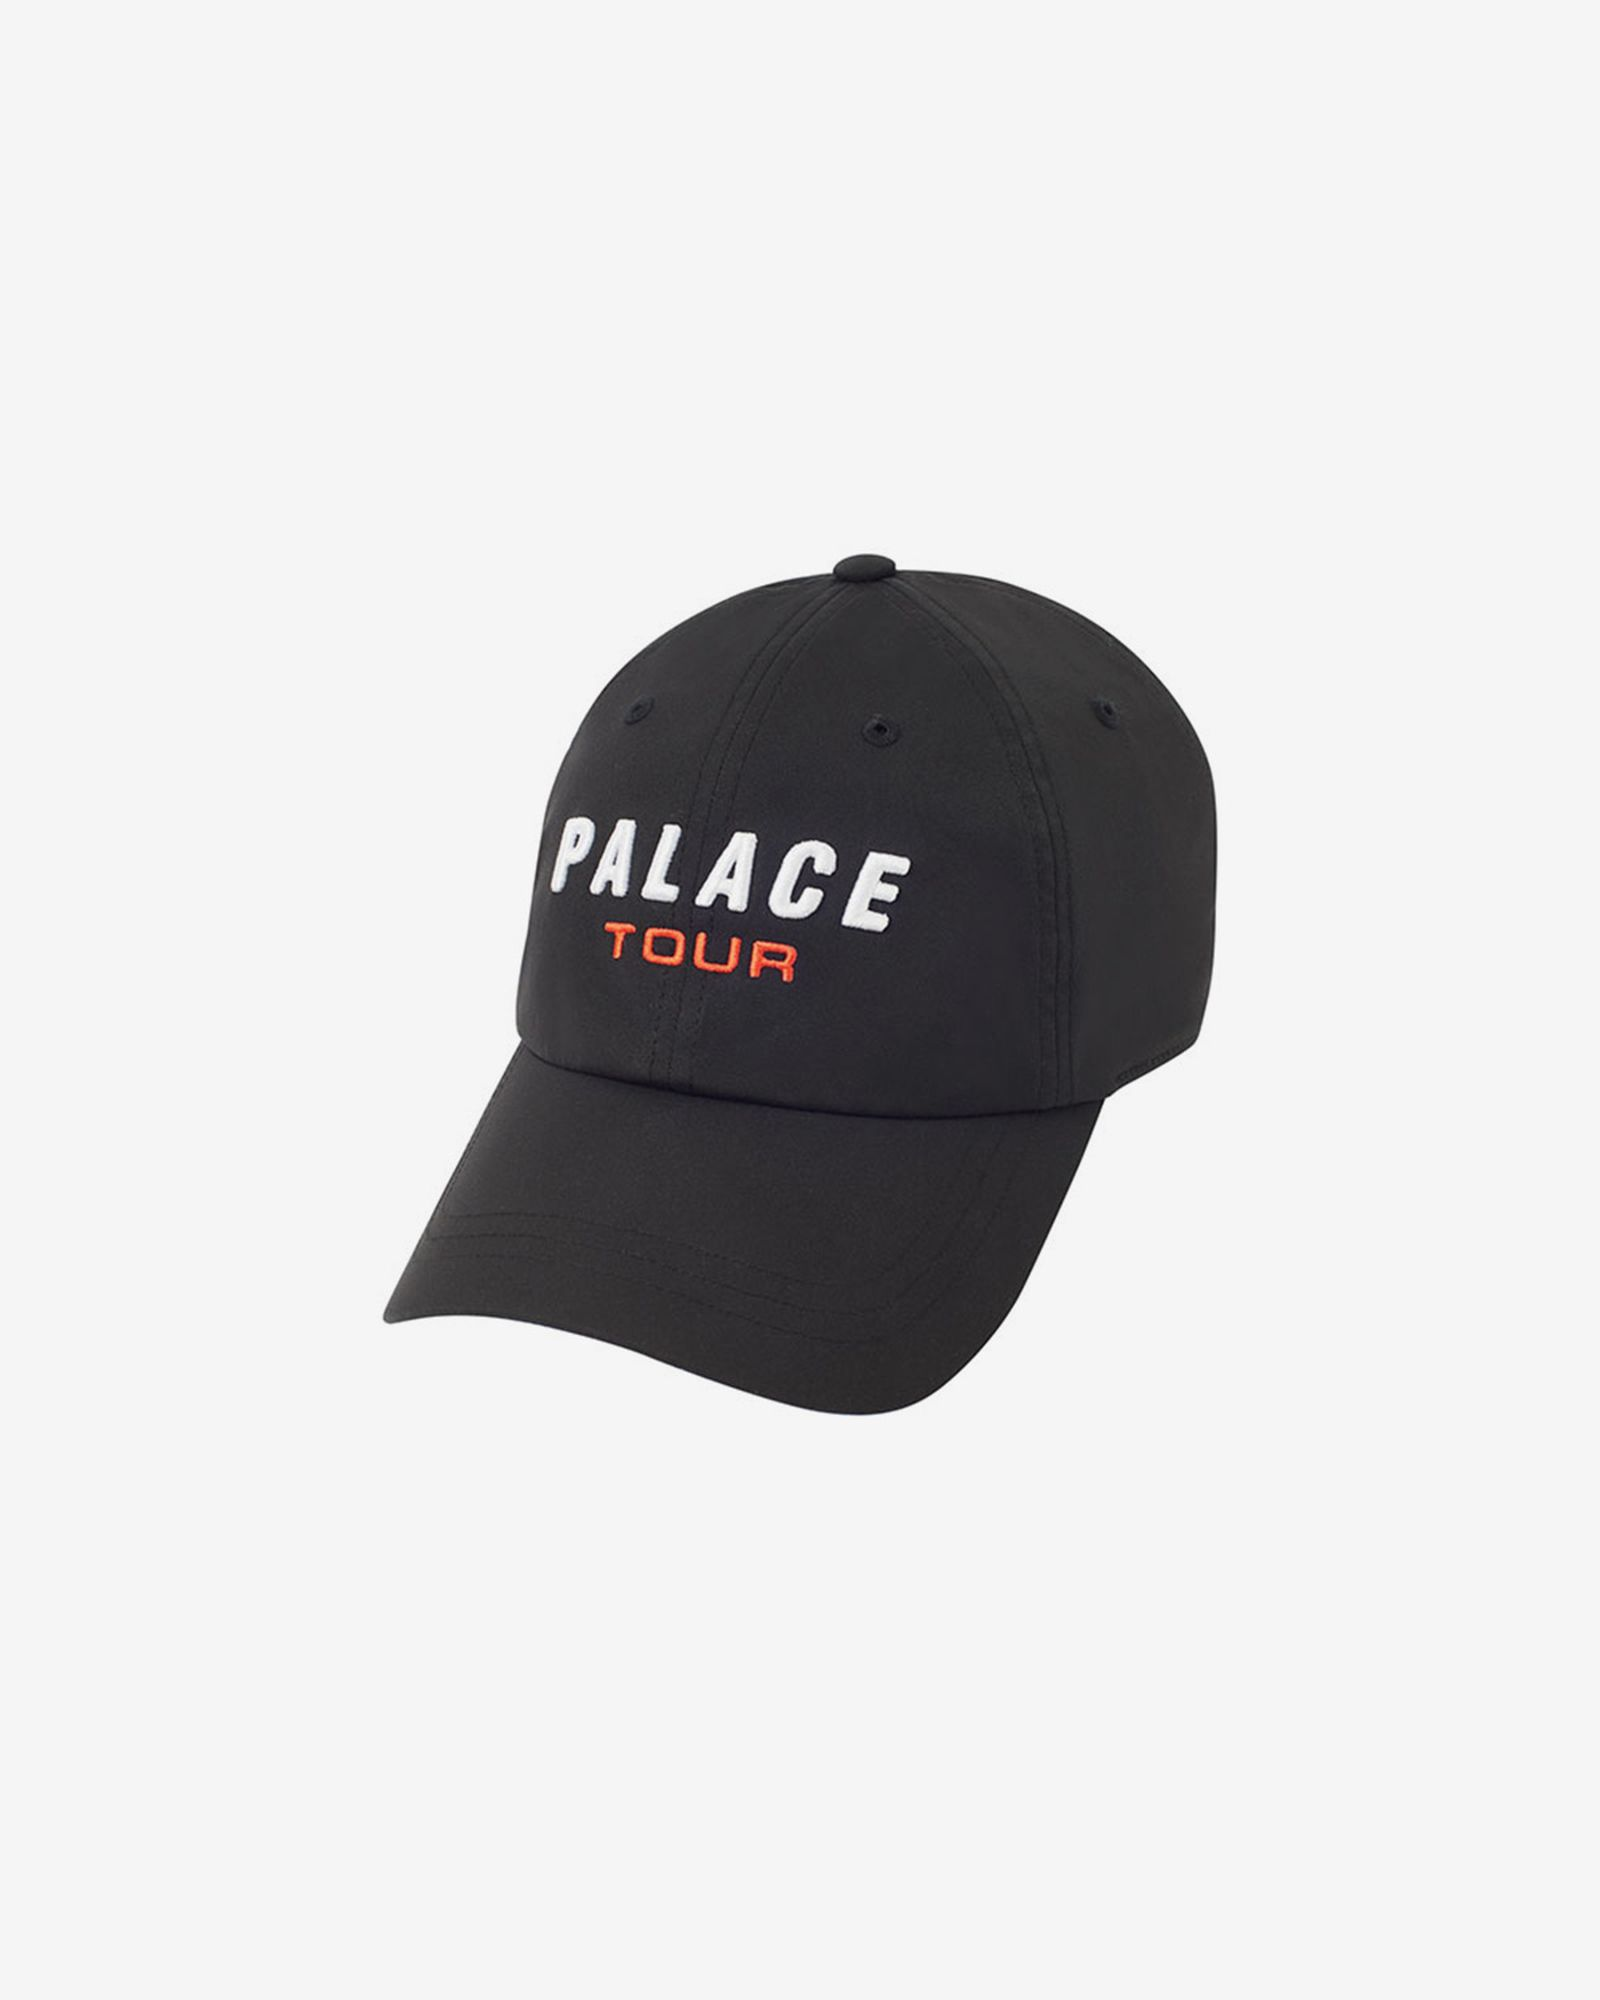 palace-adidas-golf-collaboration-official-look-11